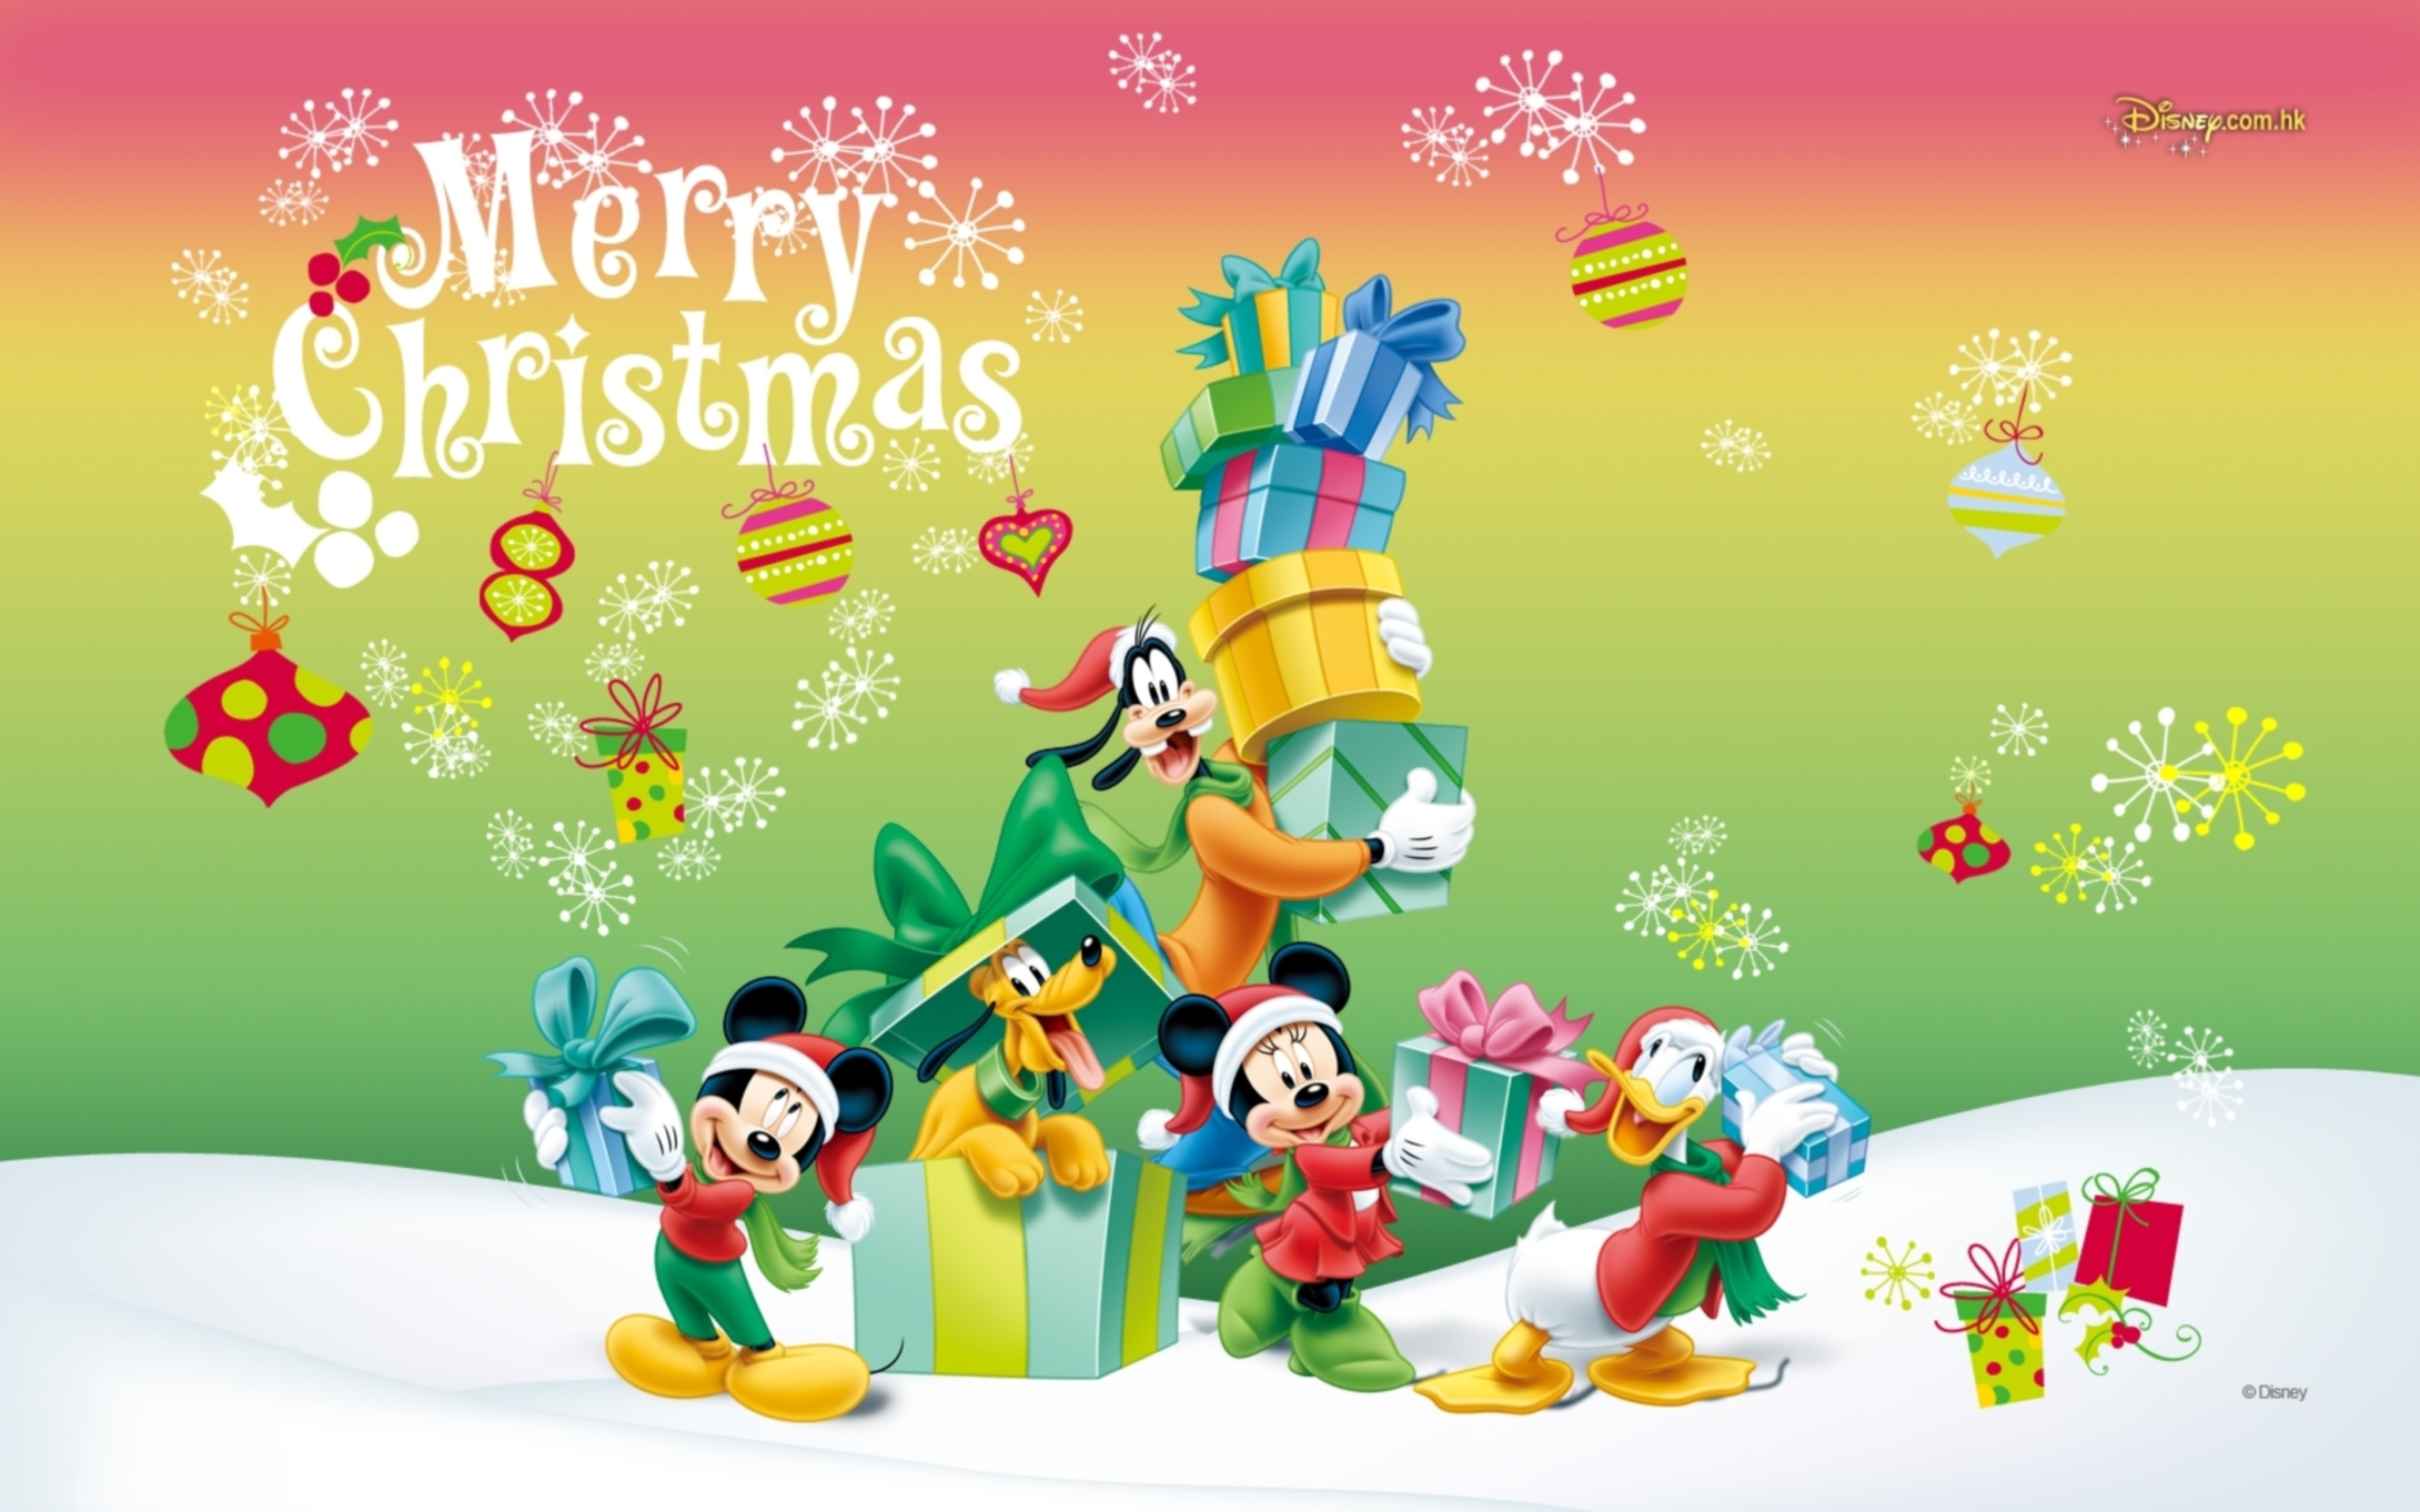 Cartoon characters on Christmas wallpapers and images   wallpapers 2560x1600